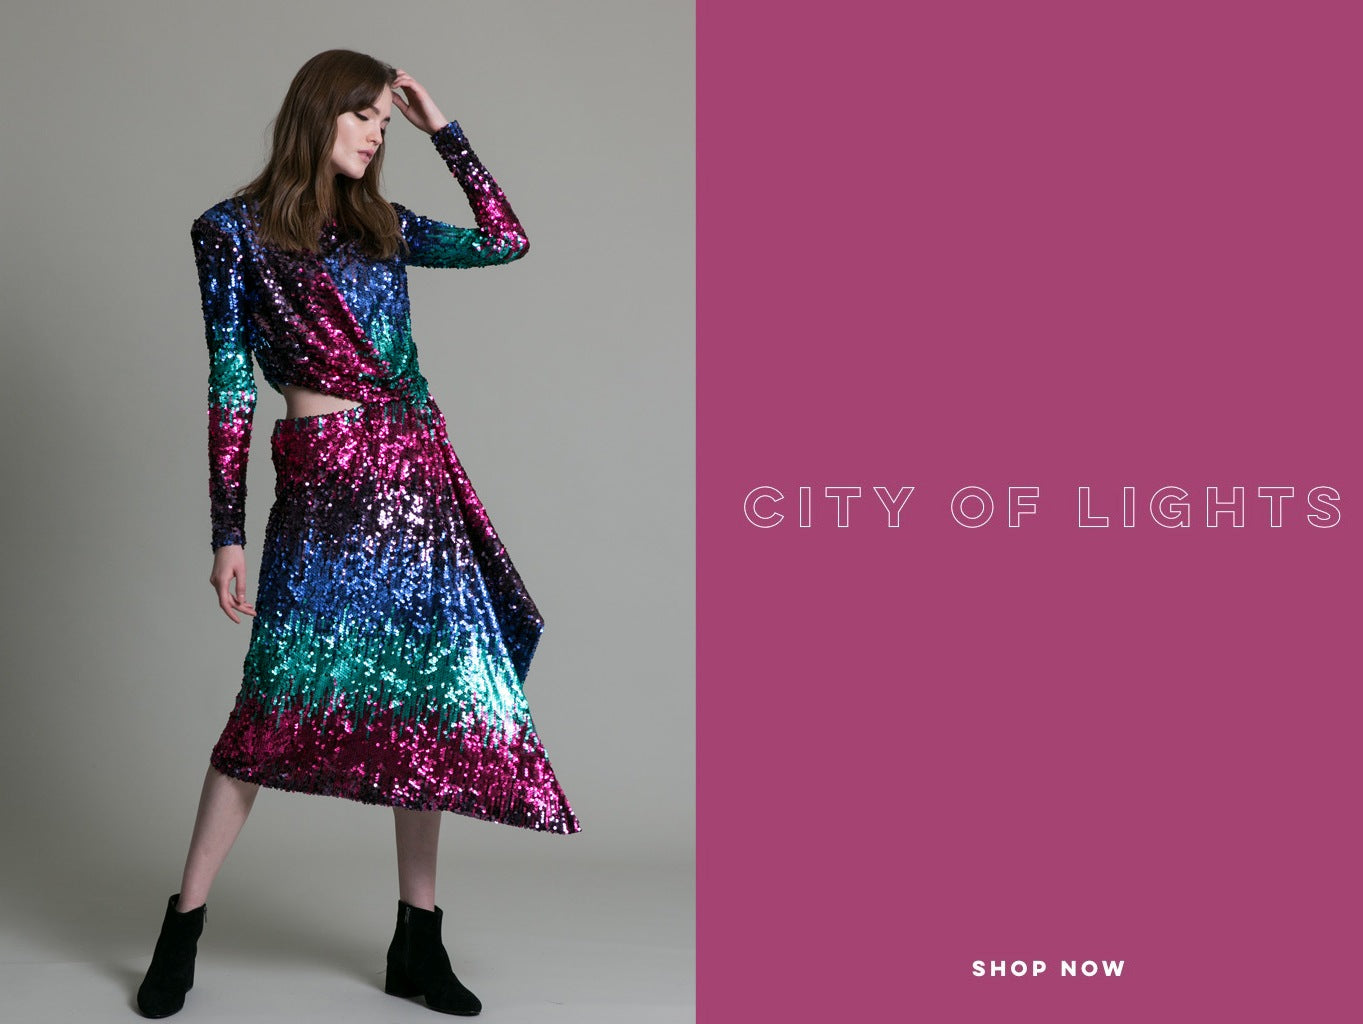 City of Lights - Shop Now